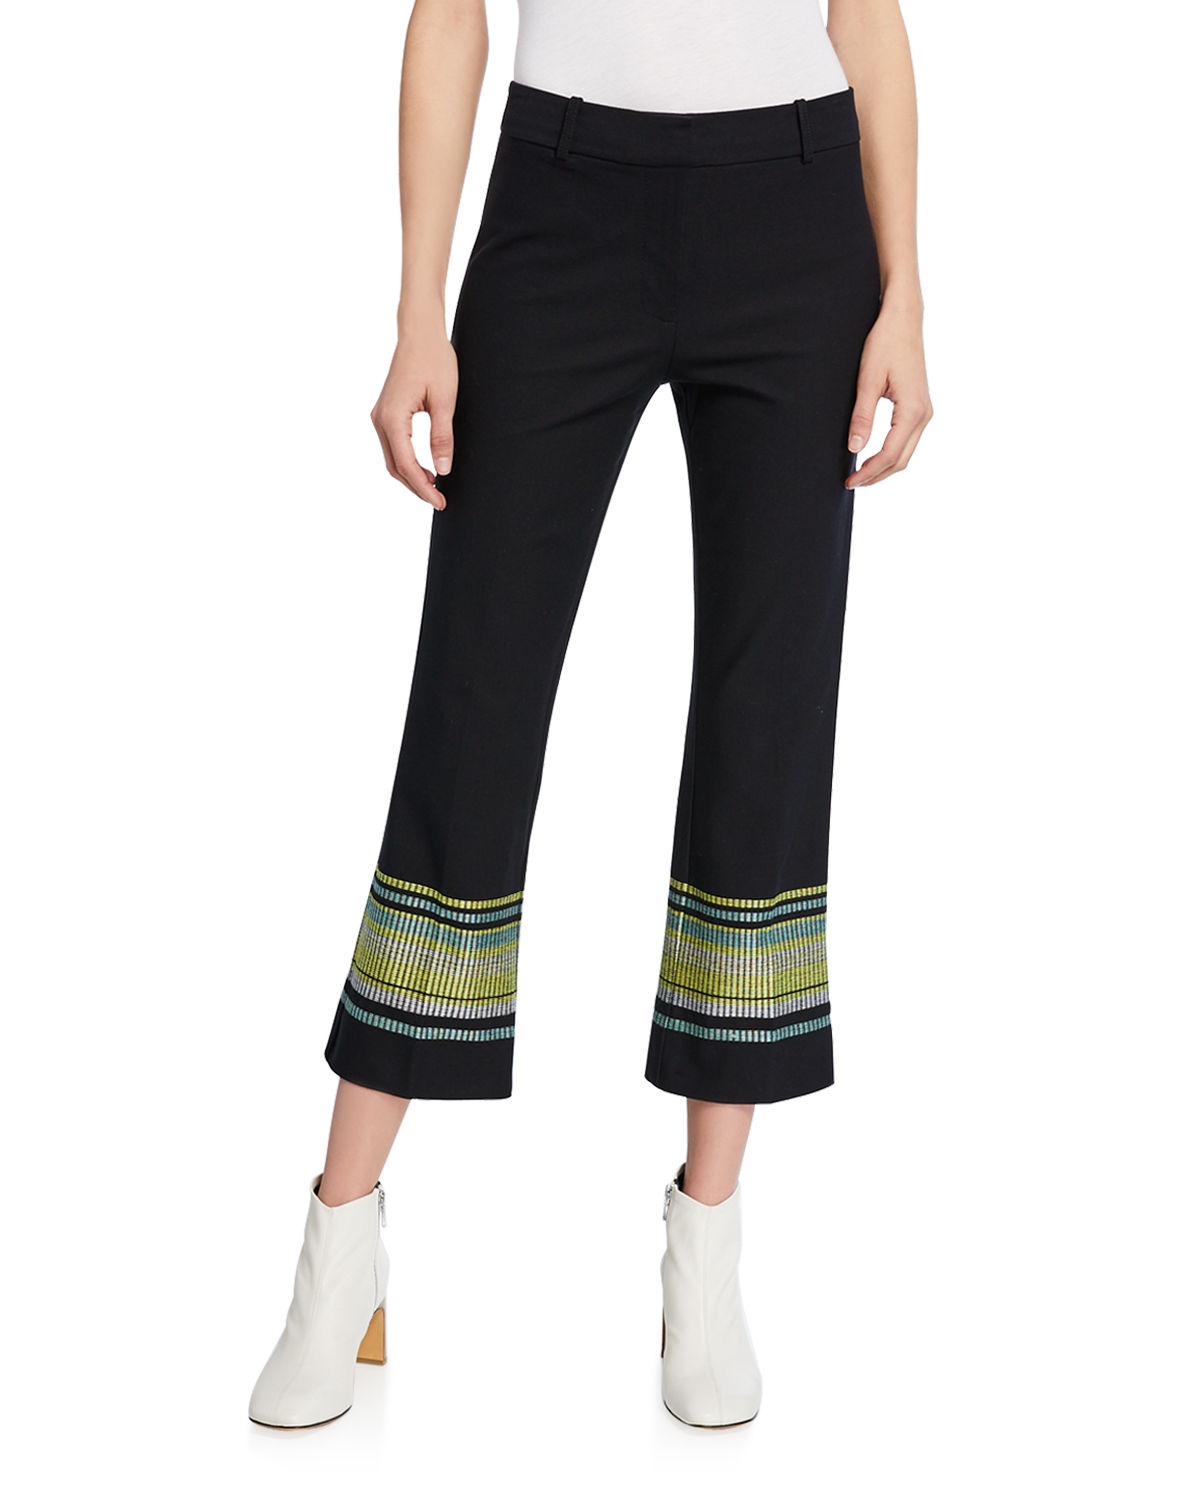 Derek Lam 10 Crosby Pants EMBROIDERED CROPPED FLARE TROUSERS